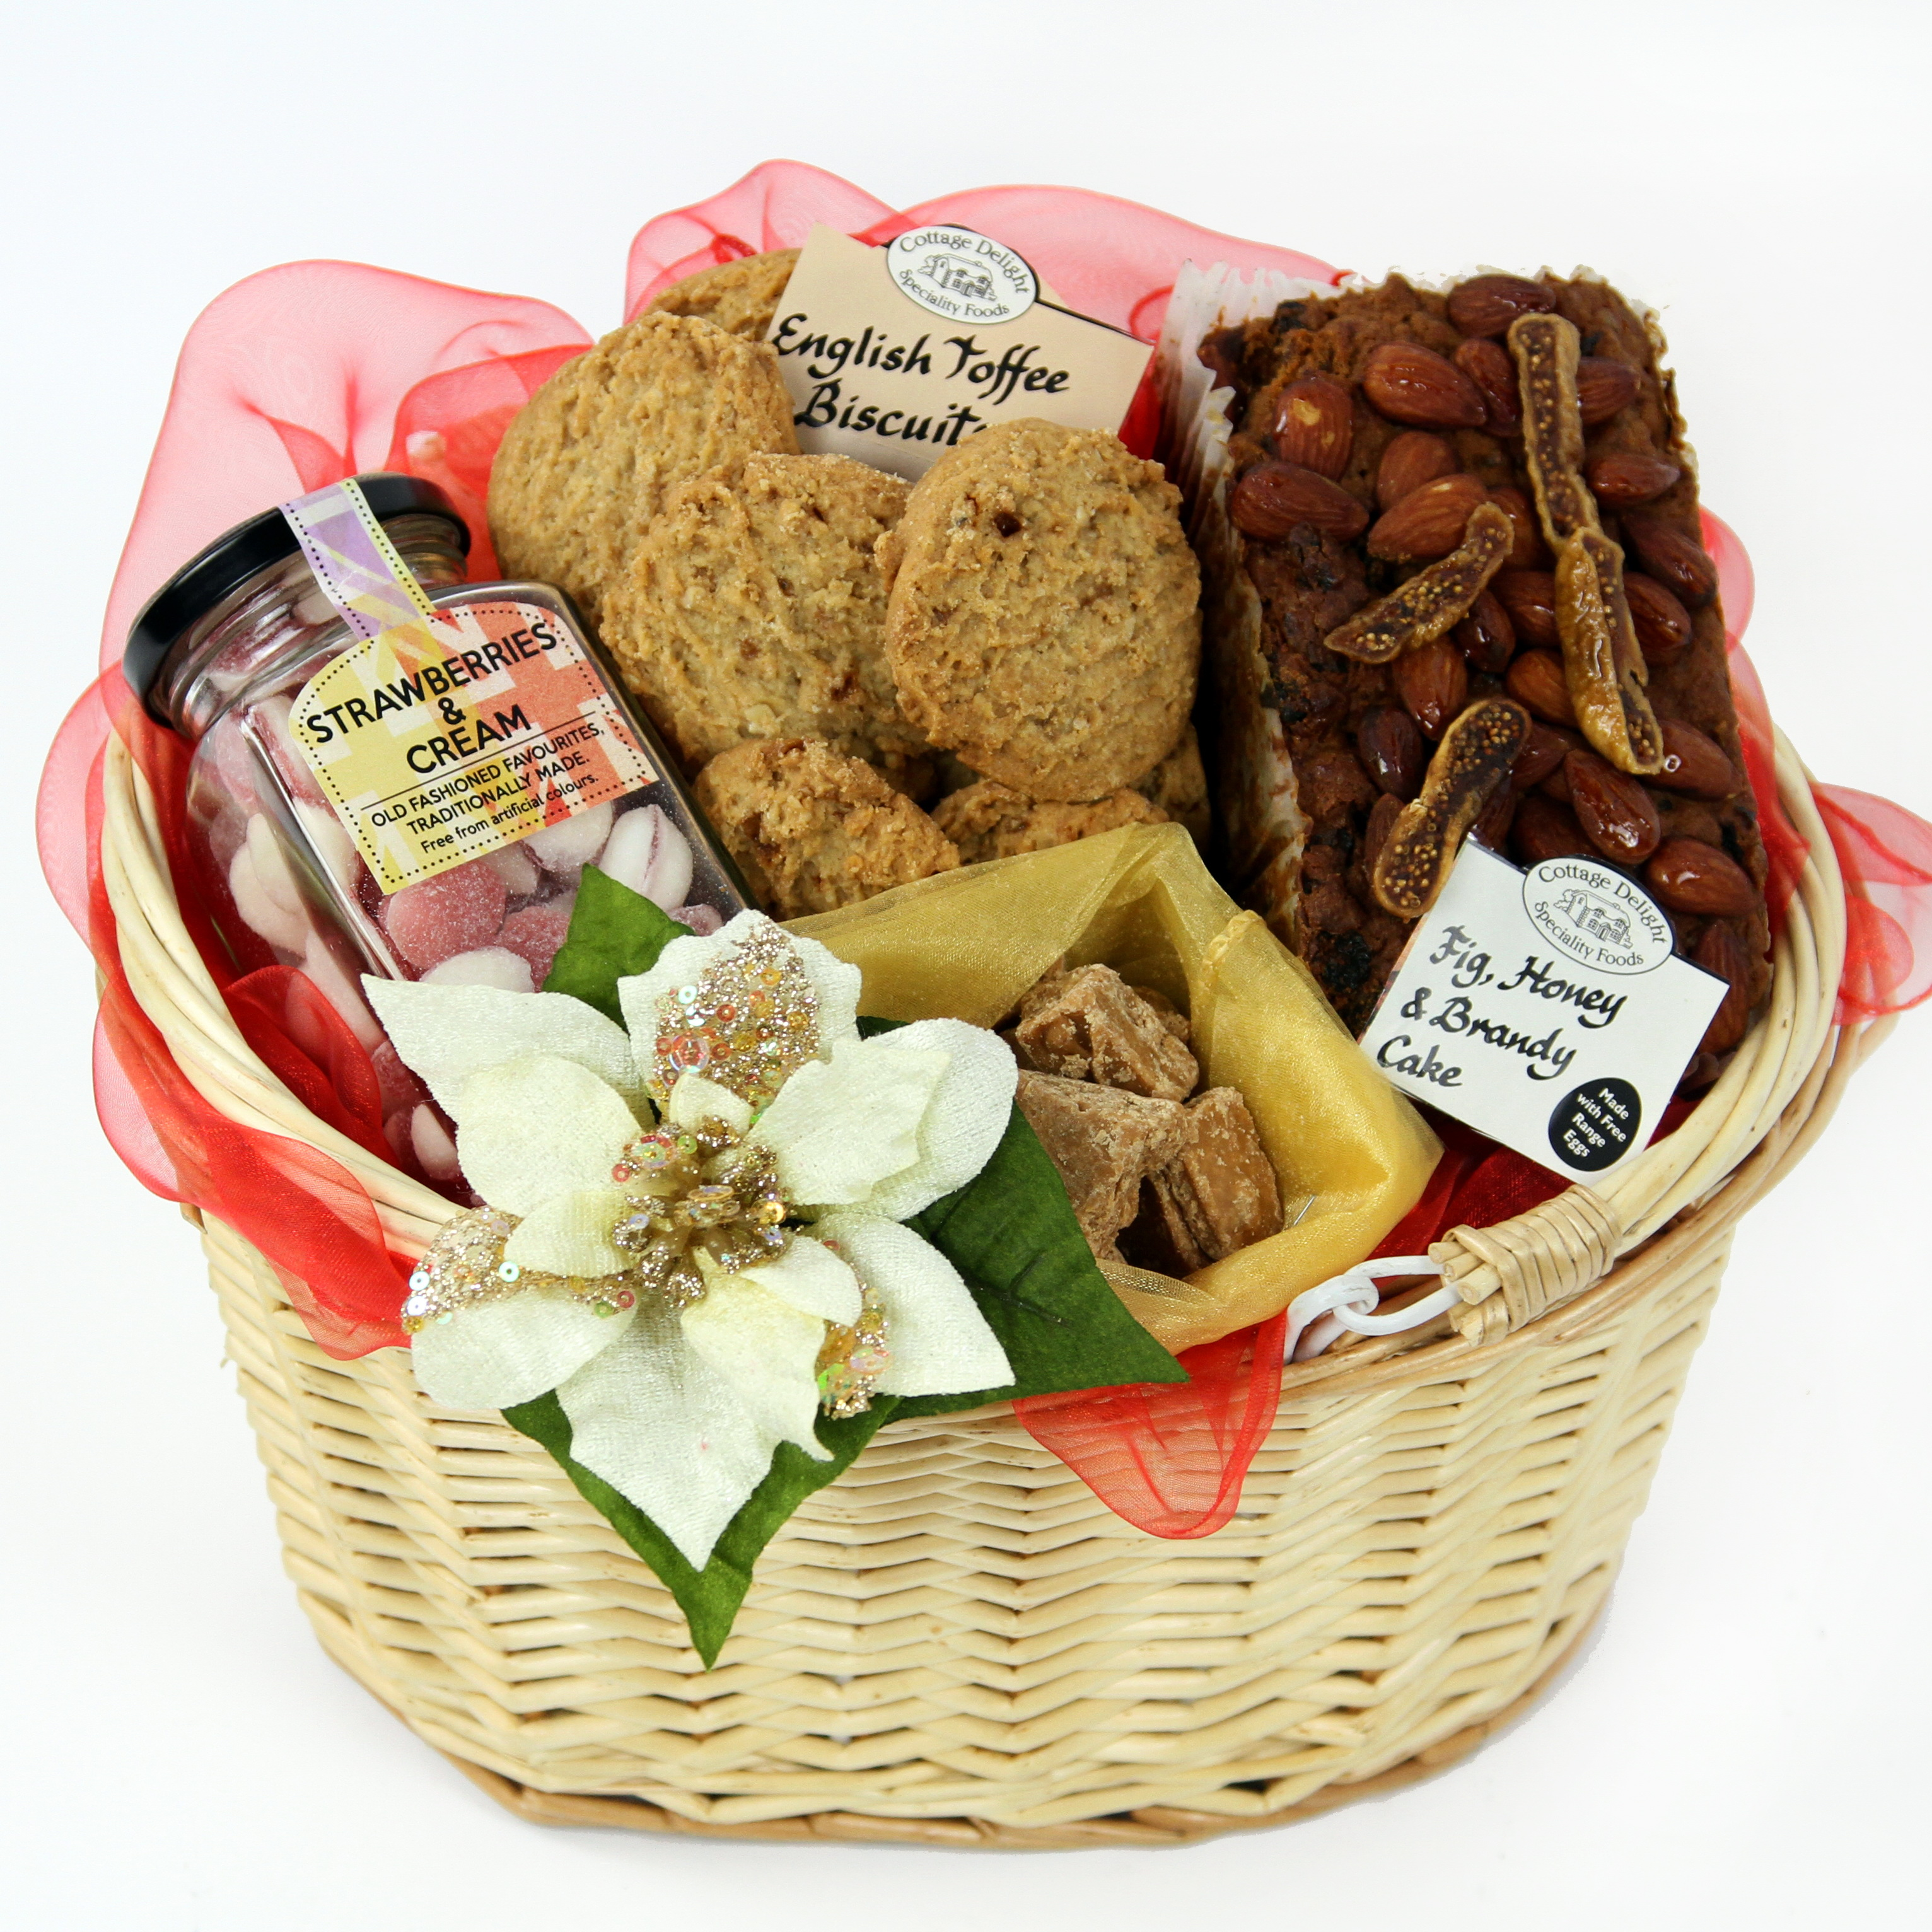 Sweet Basket - gourmet gift baskets delivery. UK gifts online. Same day flowers delivery UK and same day flowers delivery London UK.